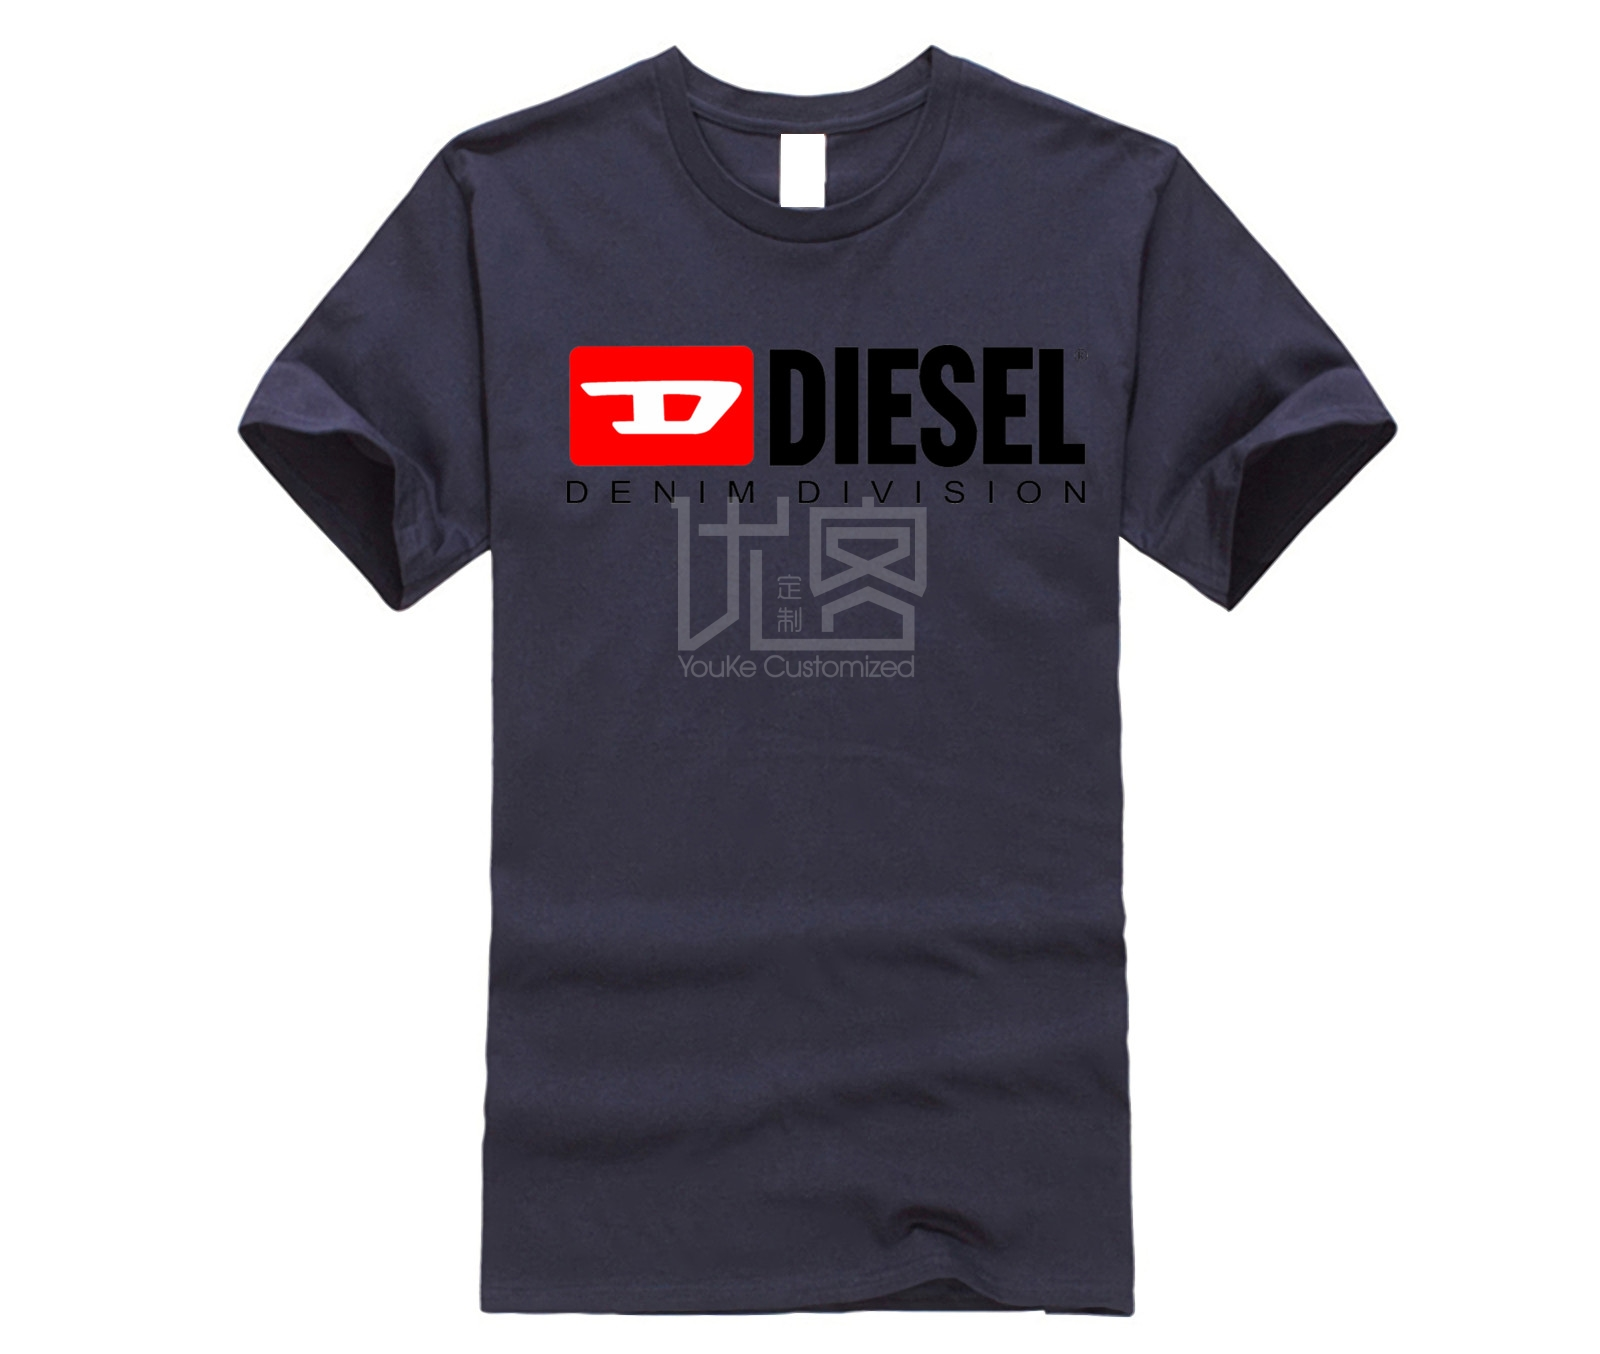 DIESEL Men's 2019 Brand Clothing 100% Cotton Casual T-shirt New Cotton T-shirt Men's Round Neck Short-sleeved Casual T-shirt